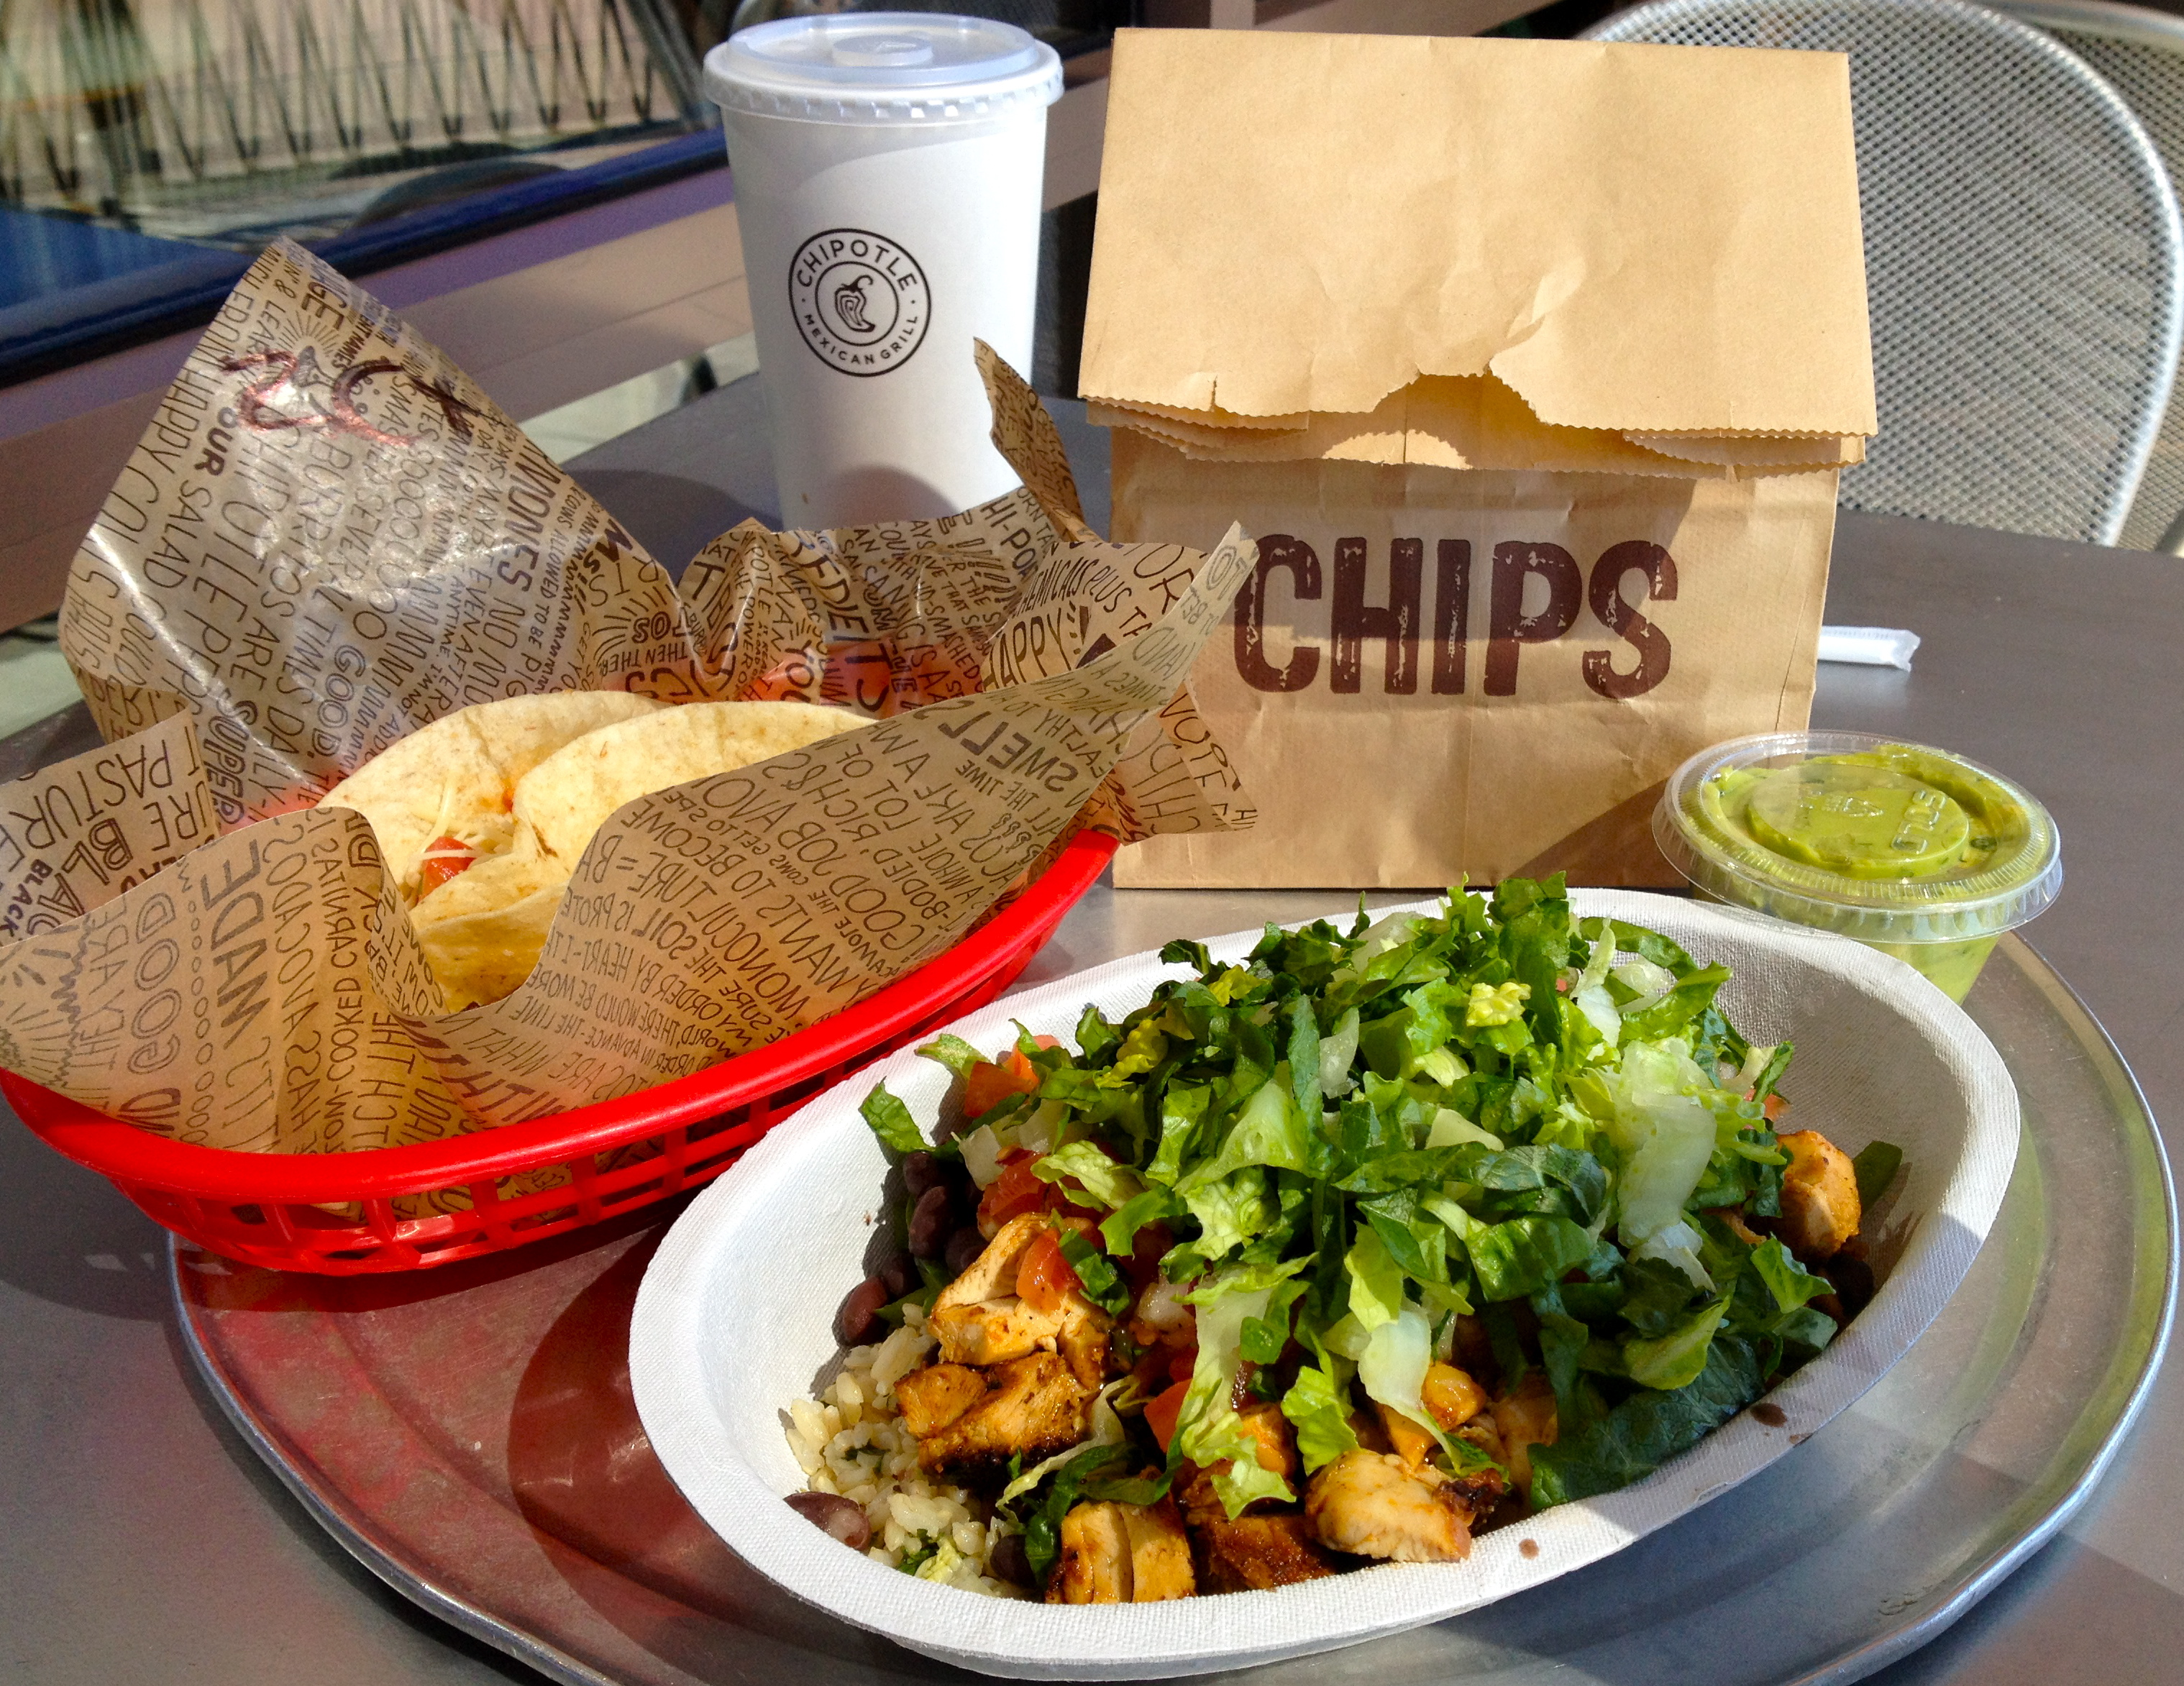 chipotle mexican grill Chipotle mexican grill unveils turnaround plan desserts are coming, along with  better digital ordering and tv ads lisa jennings | oct 26, 2016.